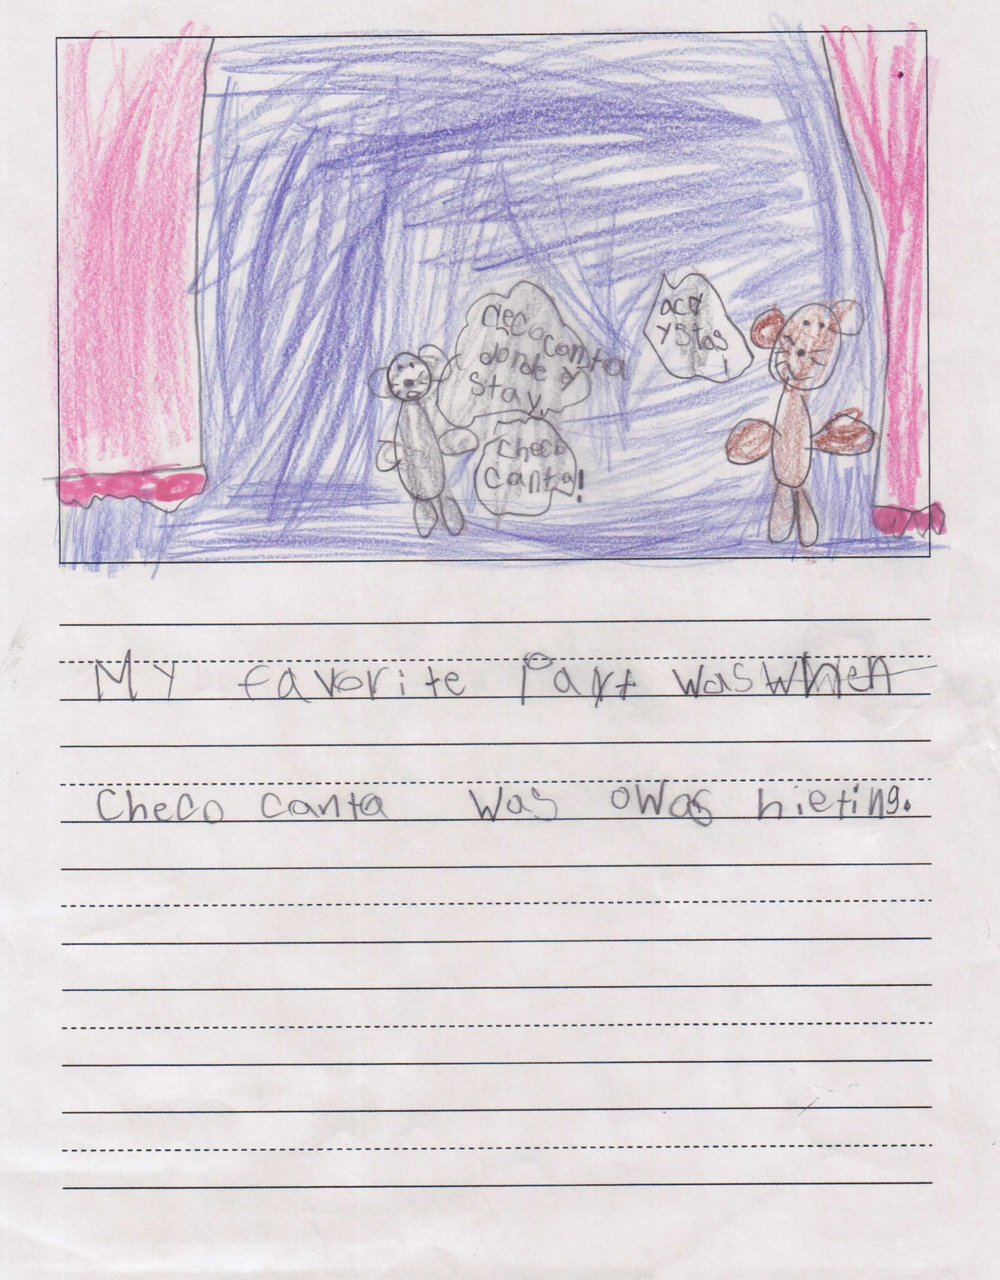 """My favorite part was when Chico Canta was always hiding."" - A student from Scarborough Elementary/Houston ISD."